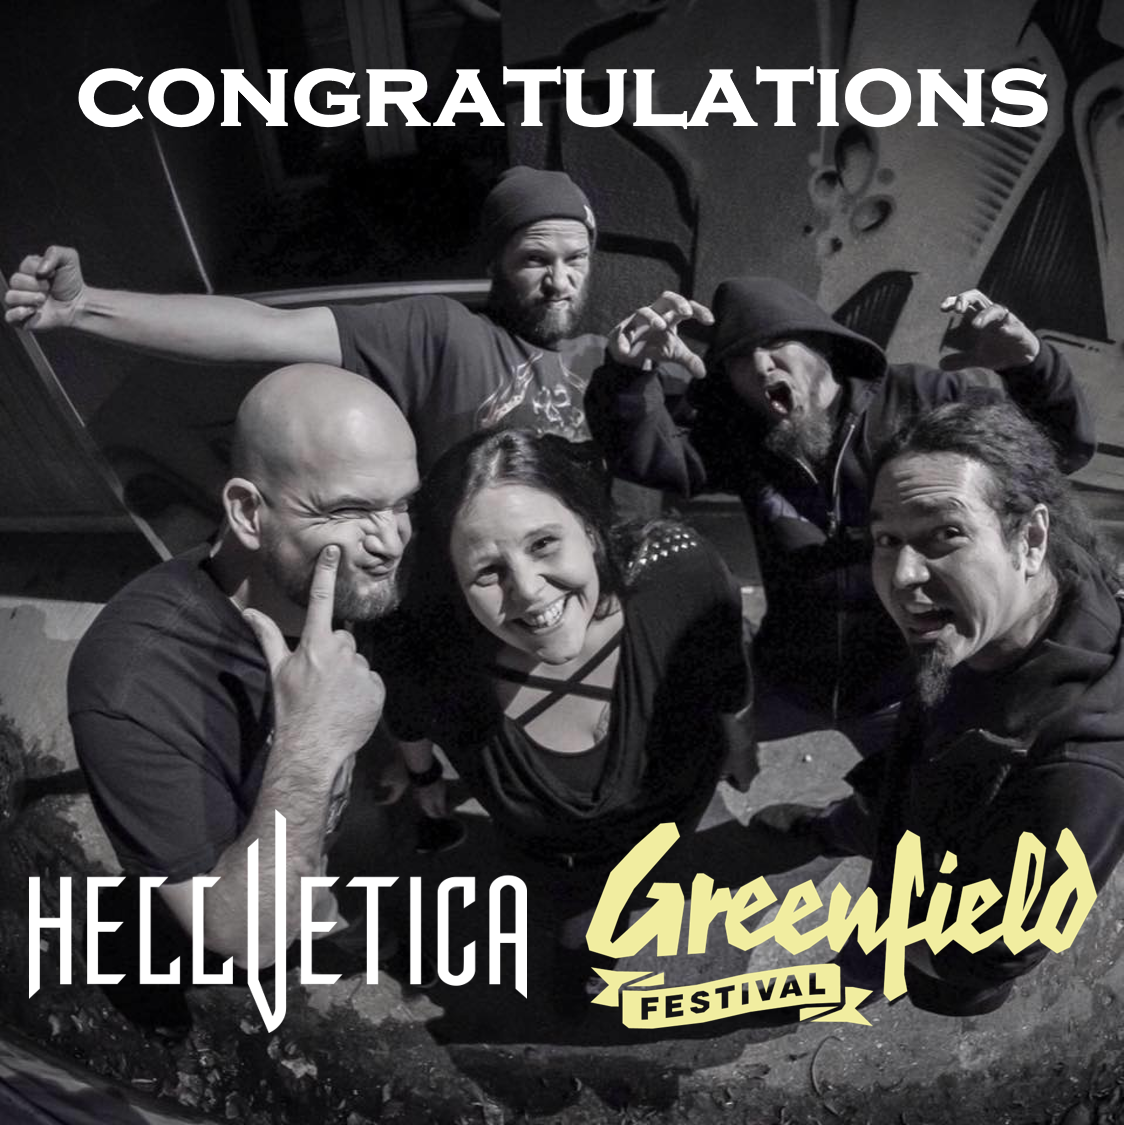 HELLVETICA @ Greenfield Festival